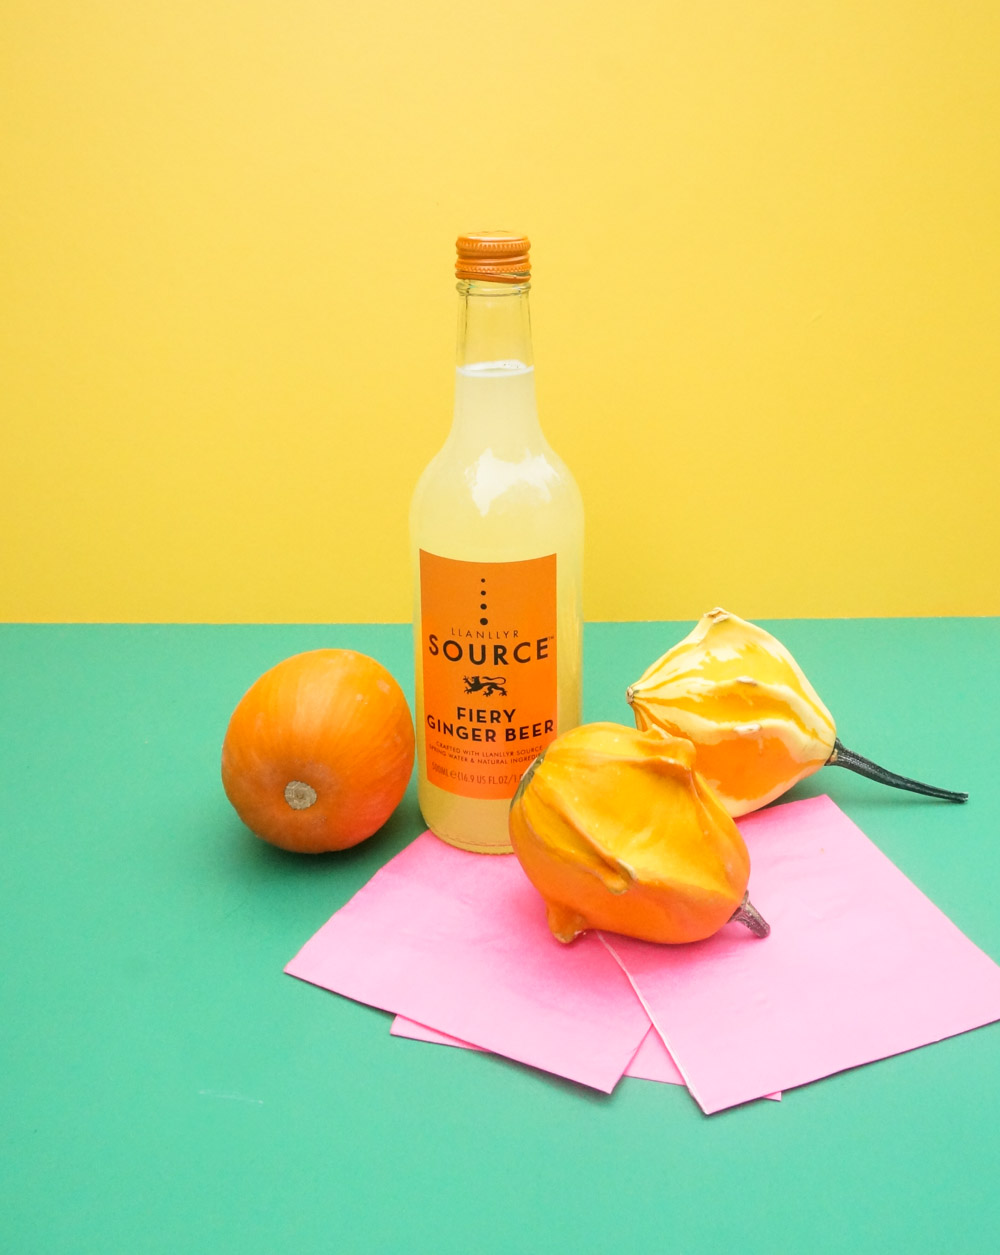 Ginger-beer-in-festive-packaging-is-a-fun-party-favor